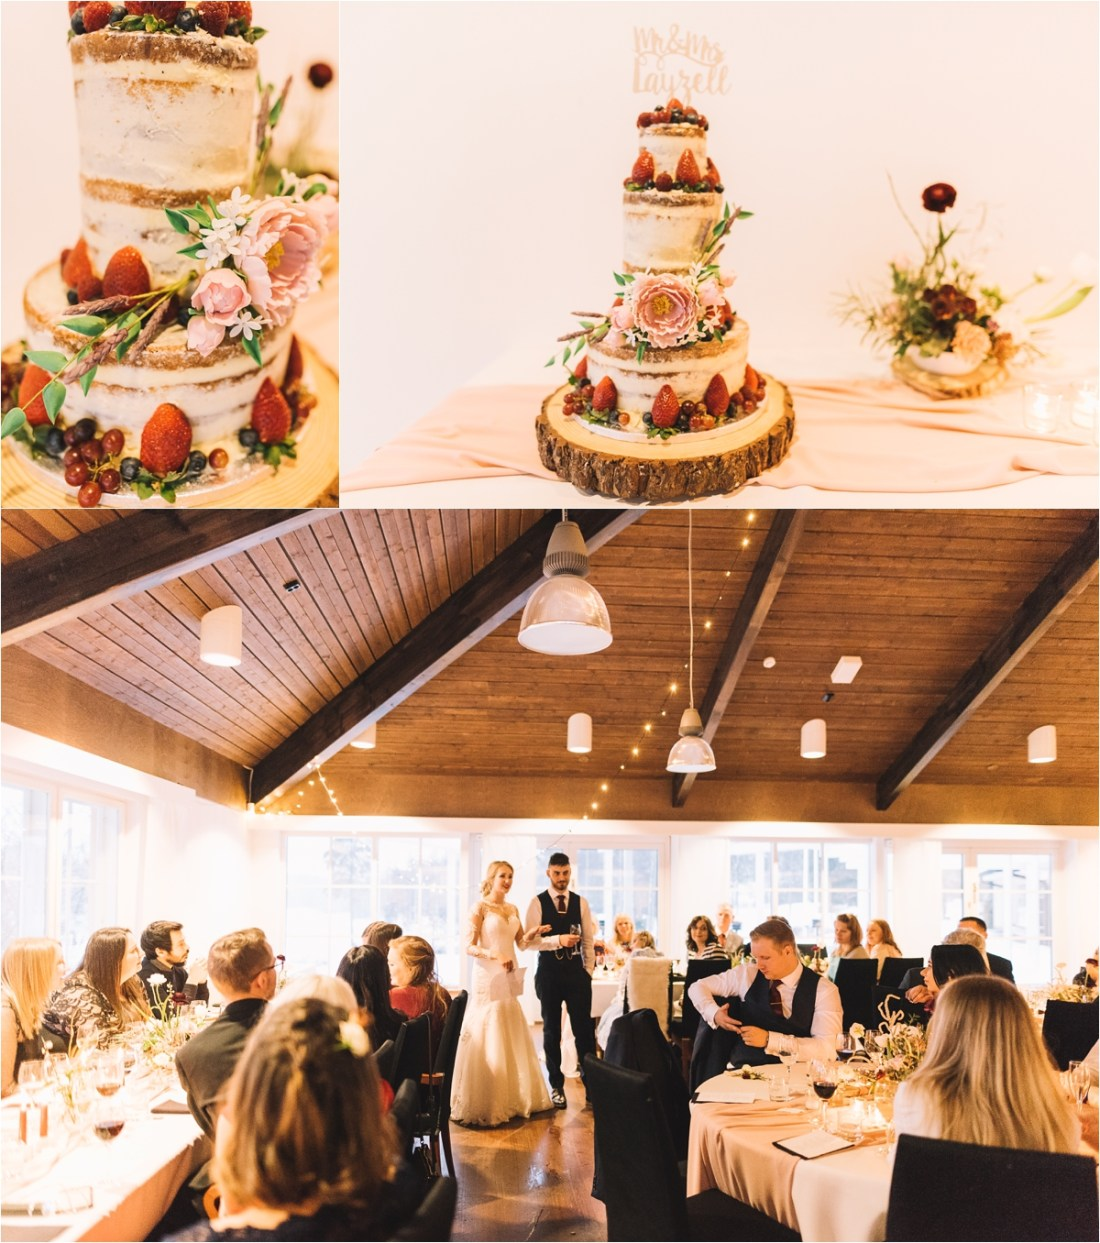 Winter wedding cake for a wedding in Finland by Lucie Watson Photography